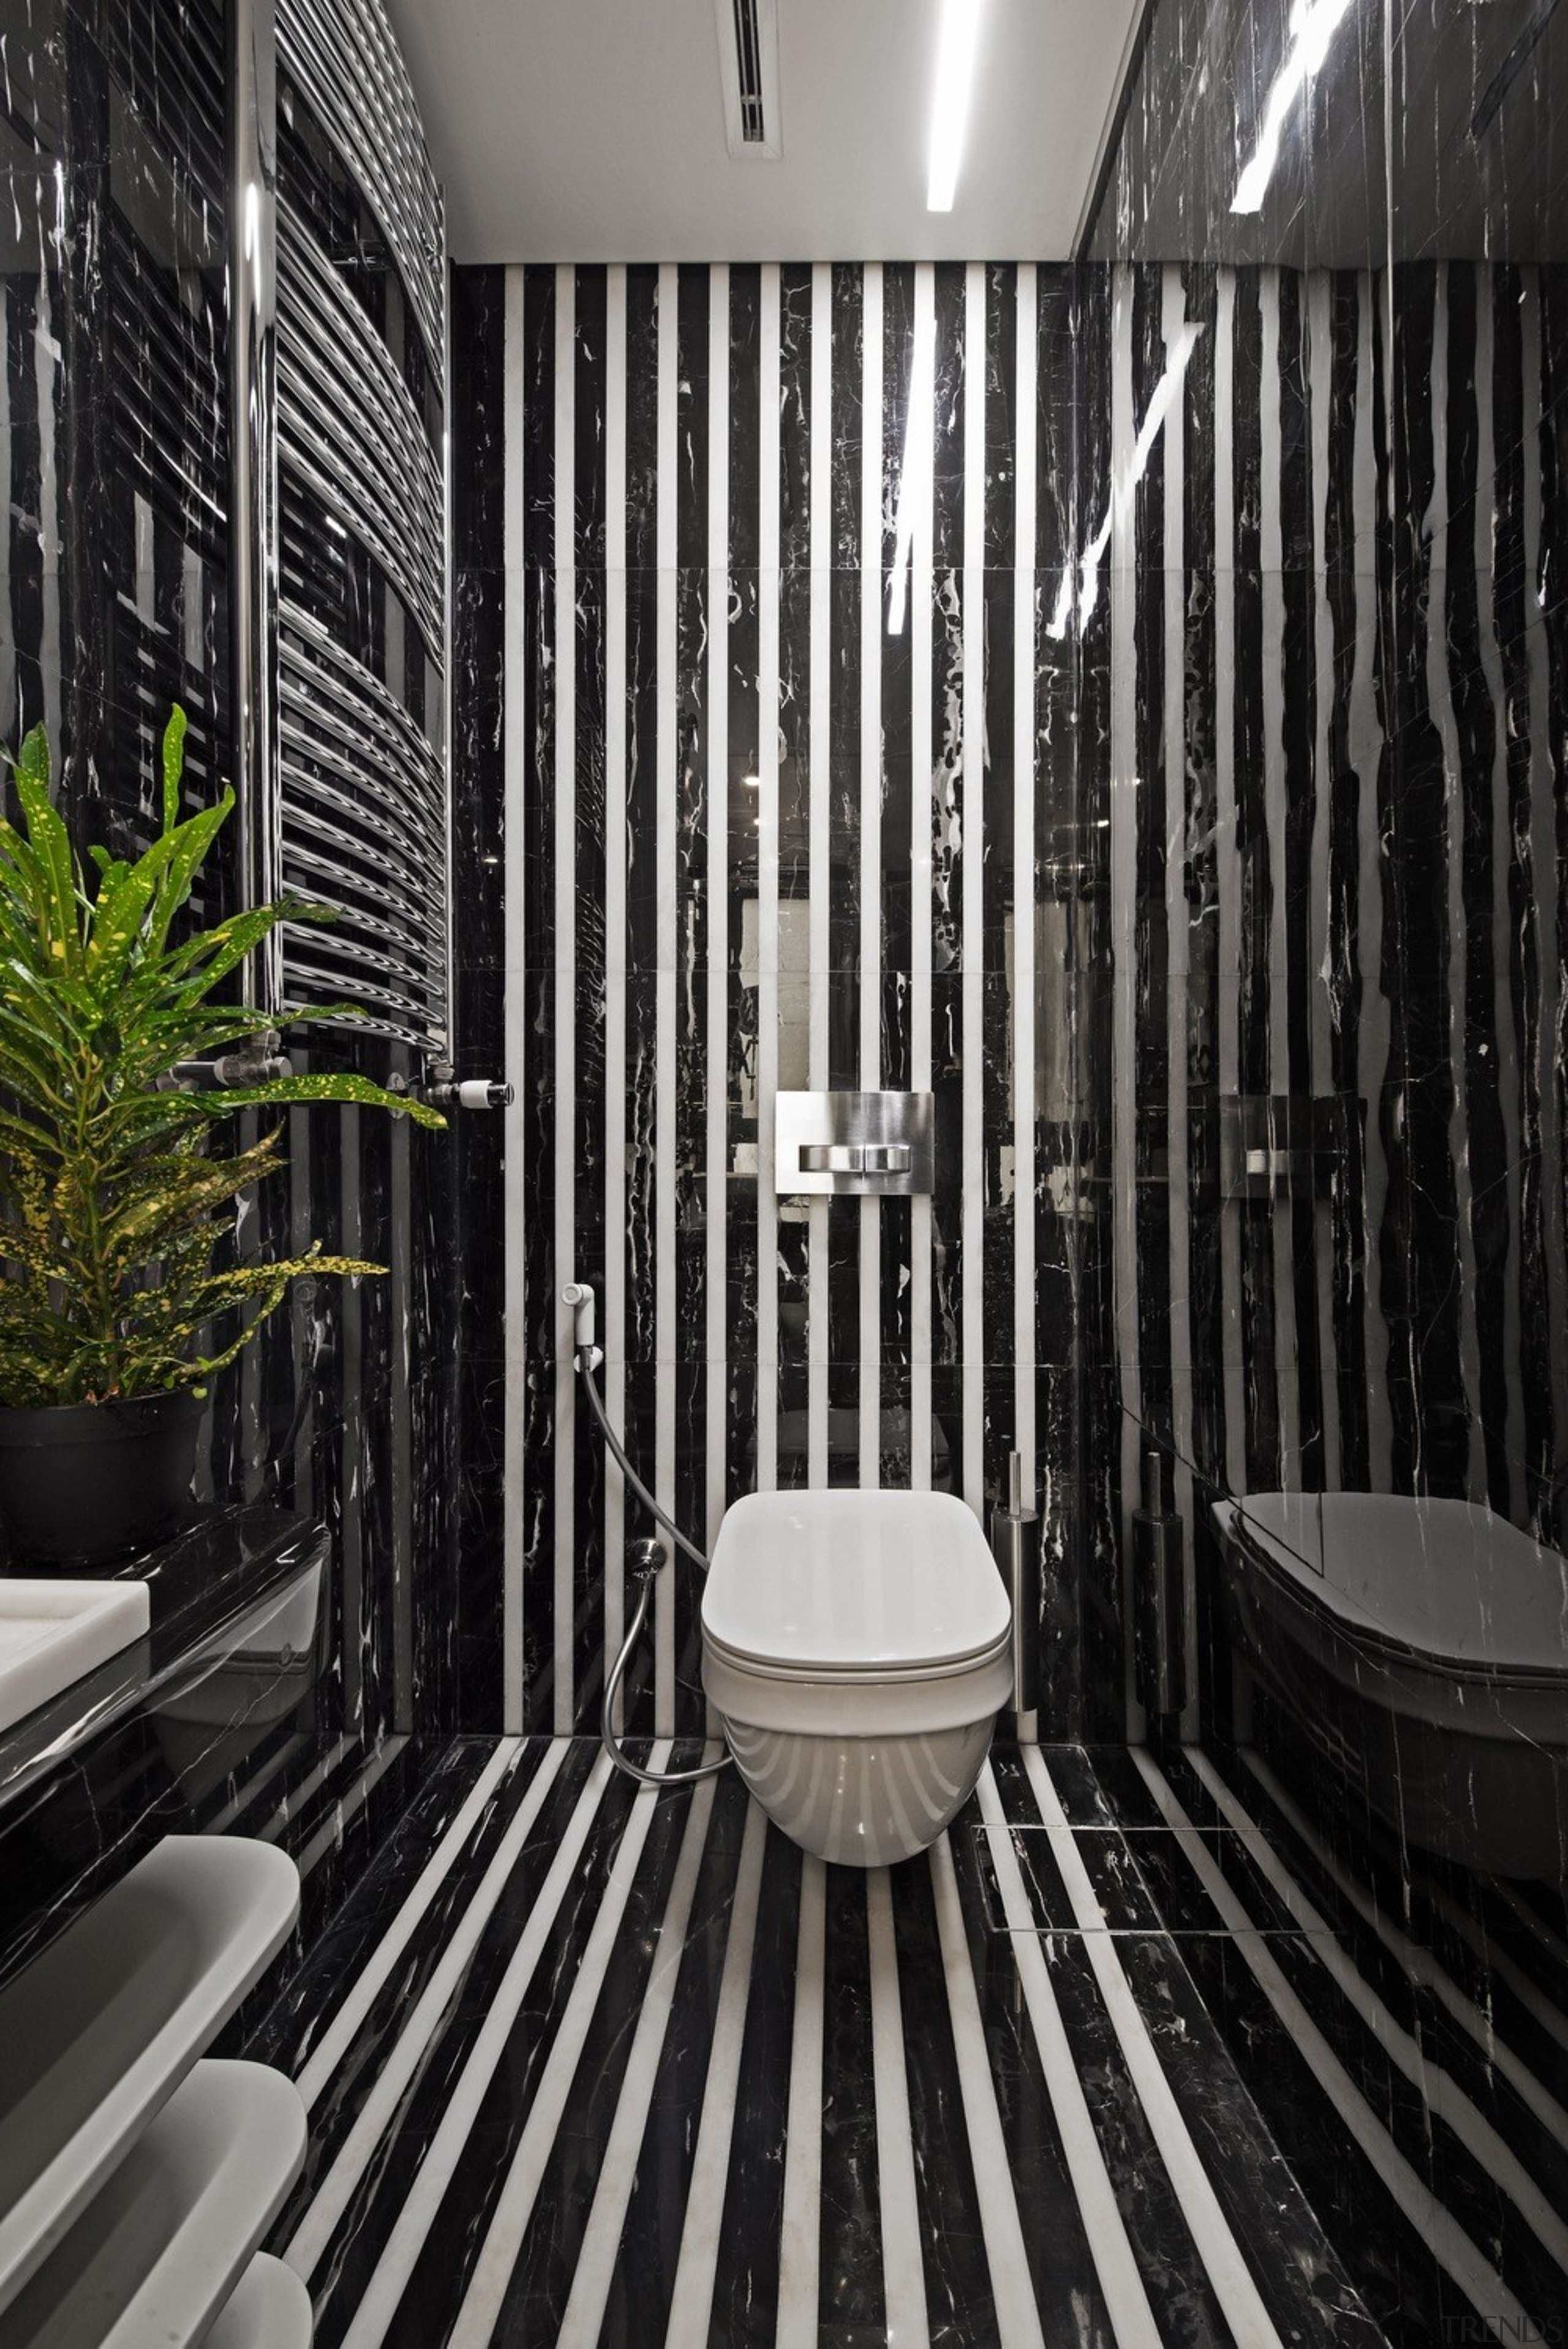 Functional for family - architecture   bathroom   architecture, bathroom, black-and-white, building, ceiling, house, interior design, line, plumbing fixture, room, black, gray